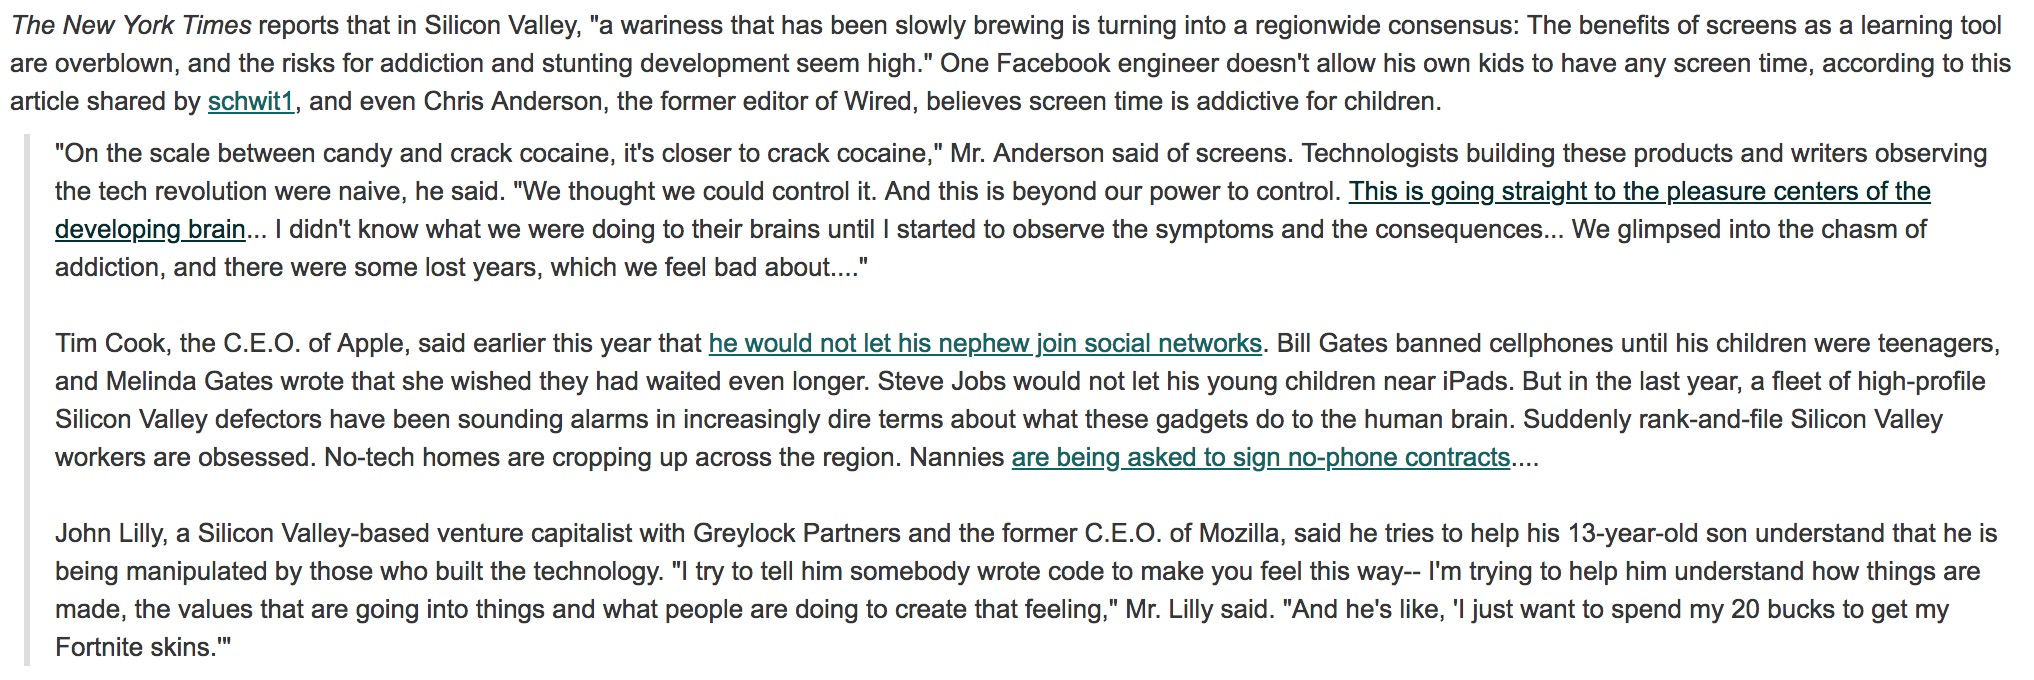 49a8047871270 A dark consensus about screens and kids begins to emerge in Silicon Valley